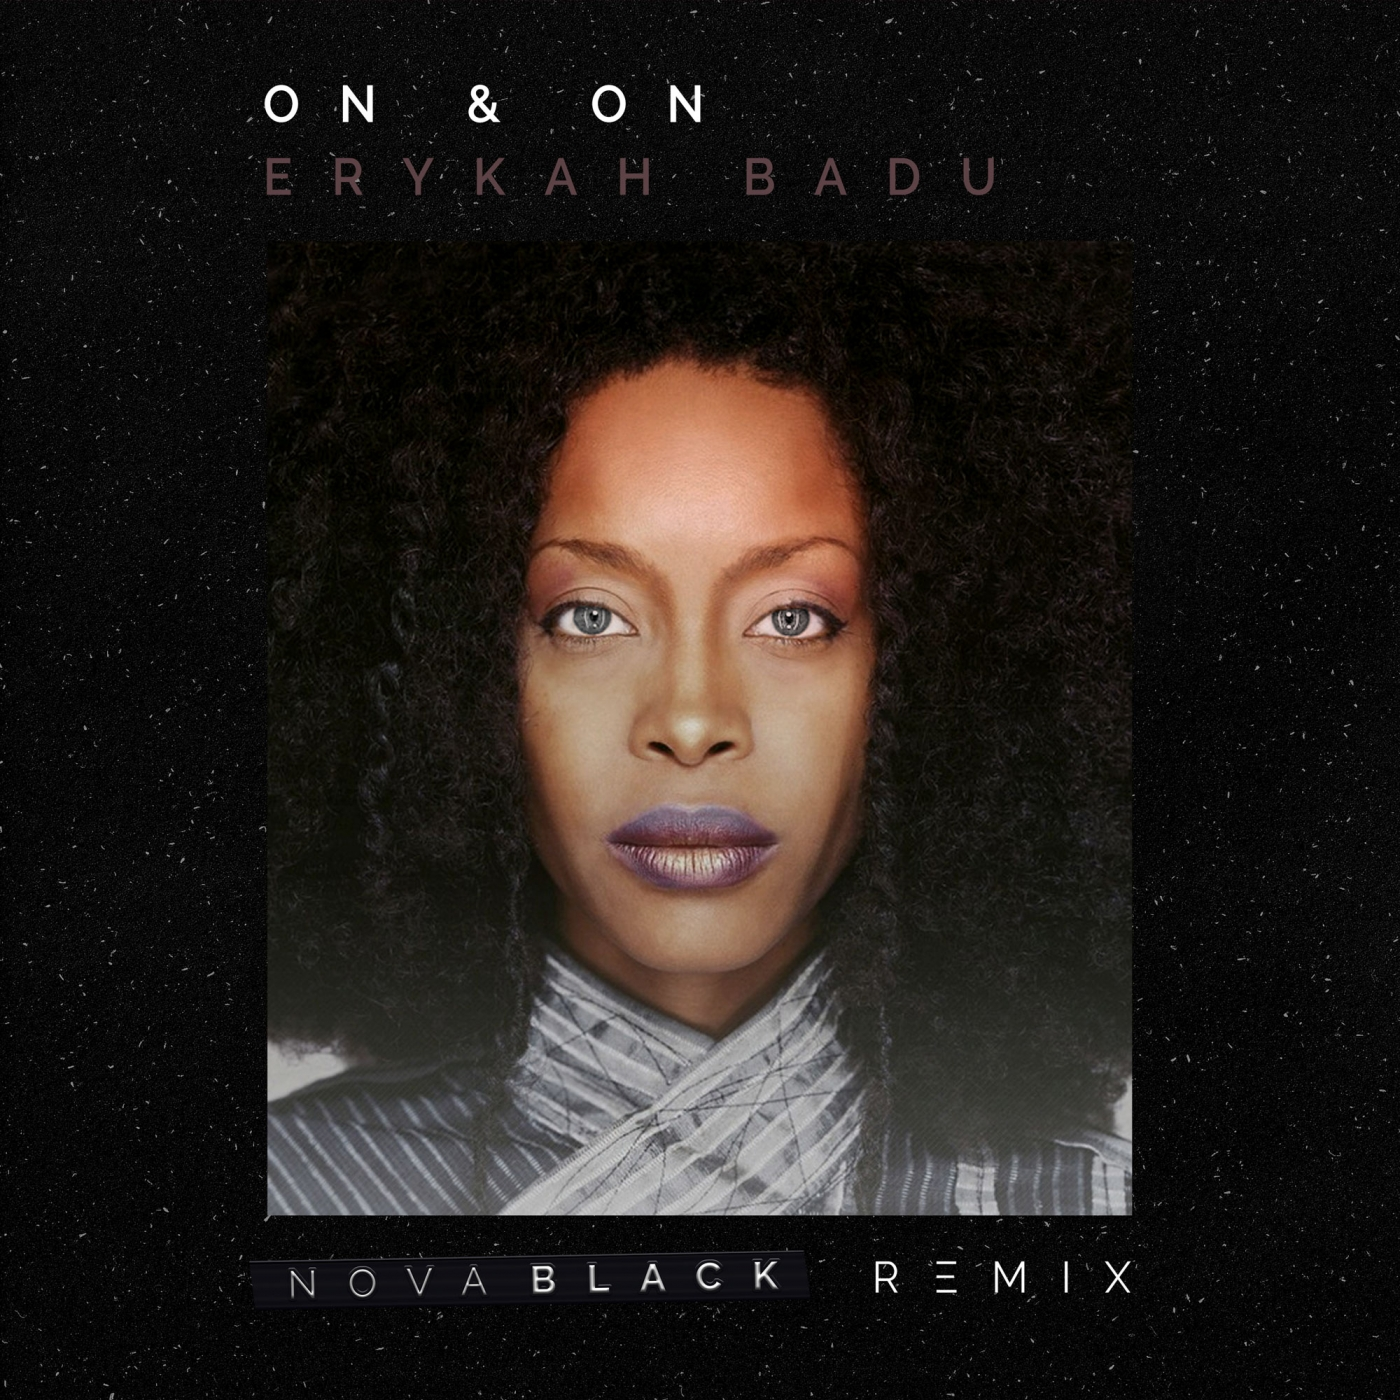 Erykah Badu - On & On (Nova Black Remix)